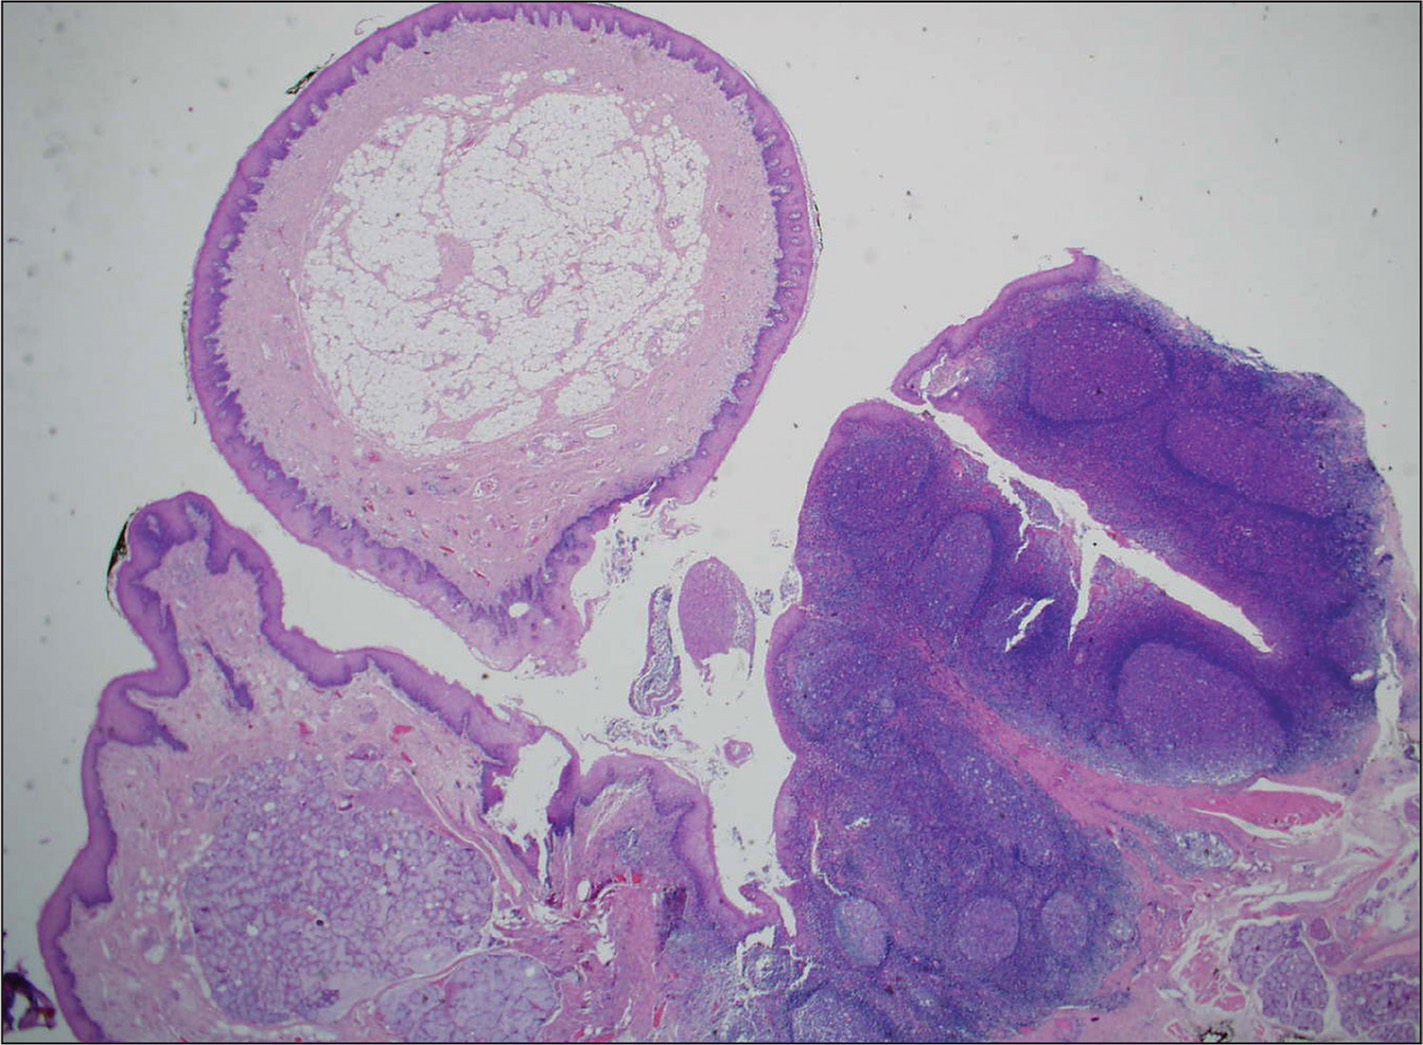 Microscopic examination shows a polypoidal lesion lined by squamous epithelium with parakeratosis. Note the deep crypt in the lymphoepithelial tissue.